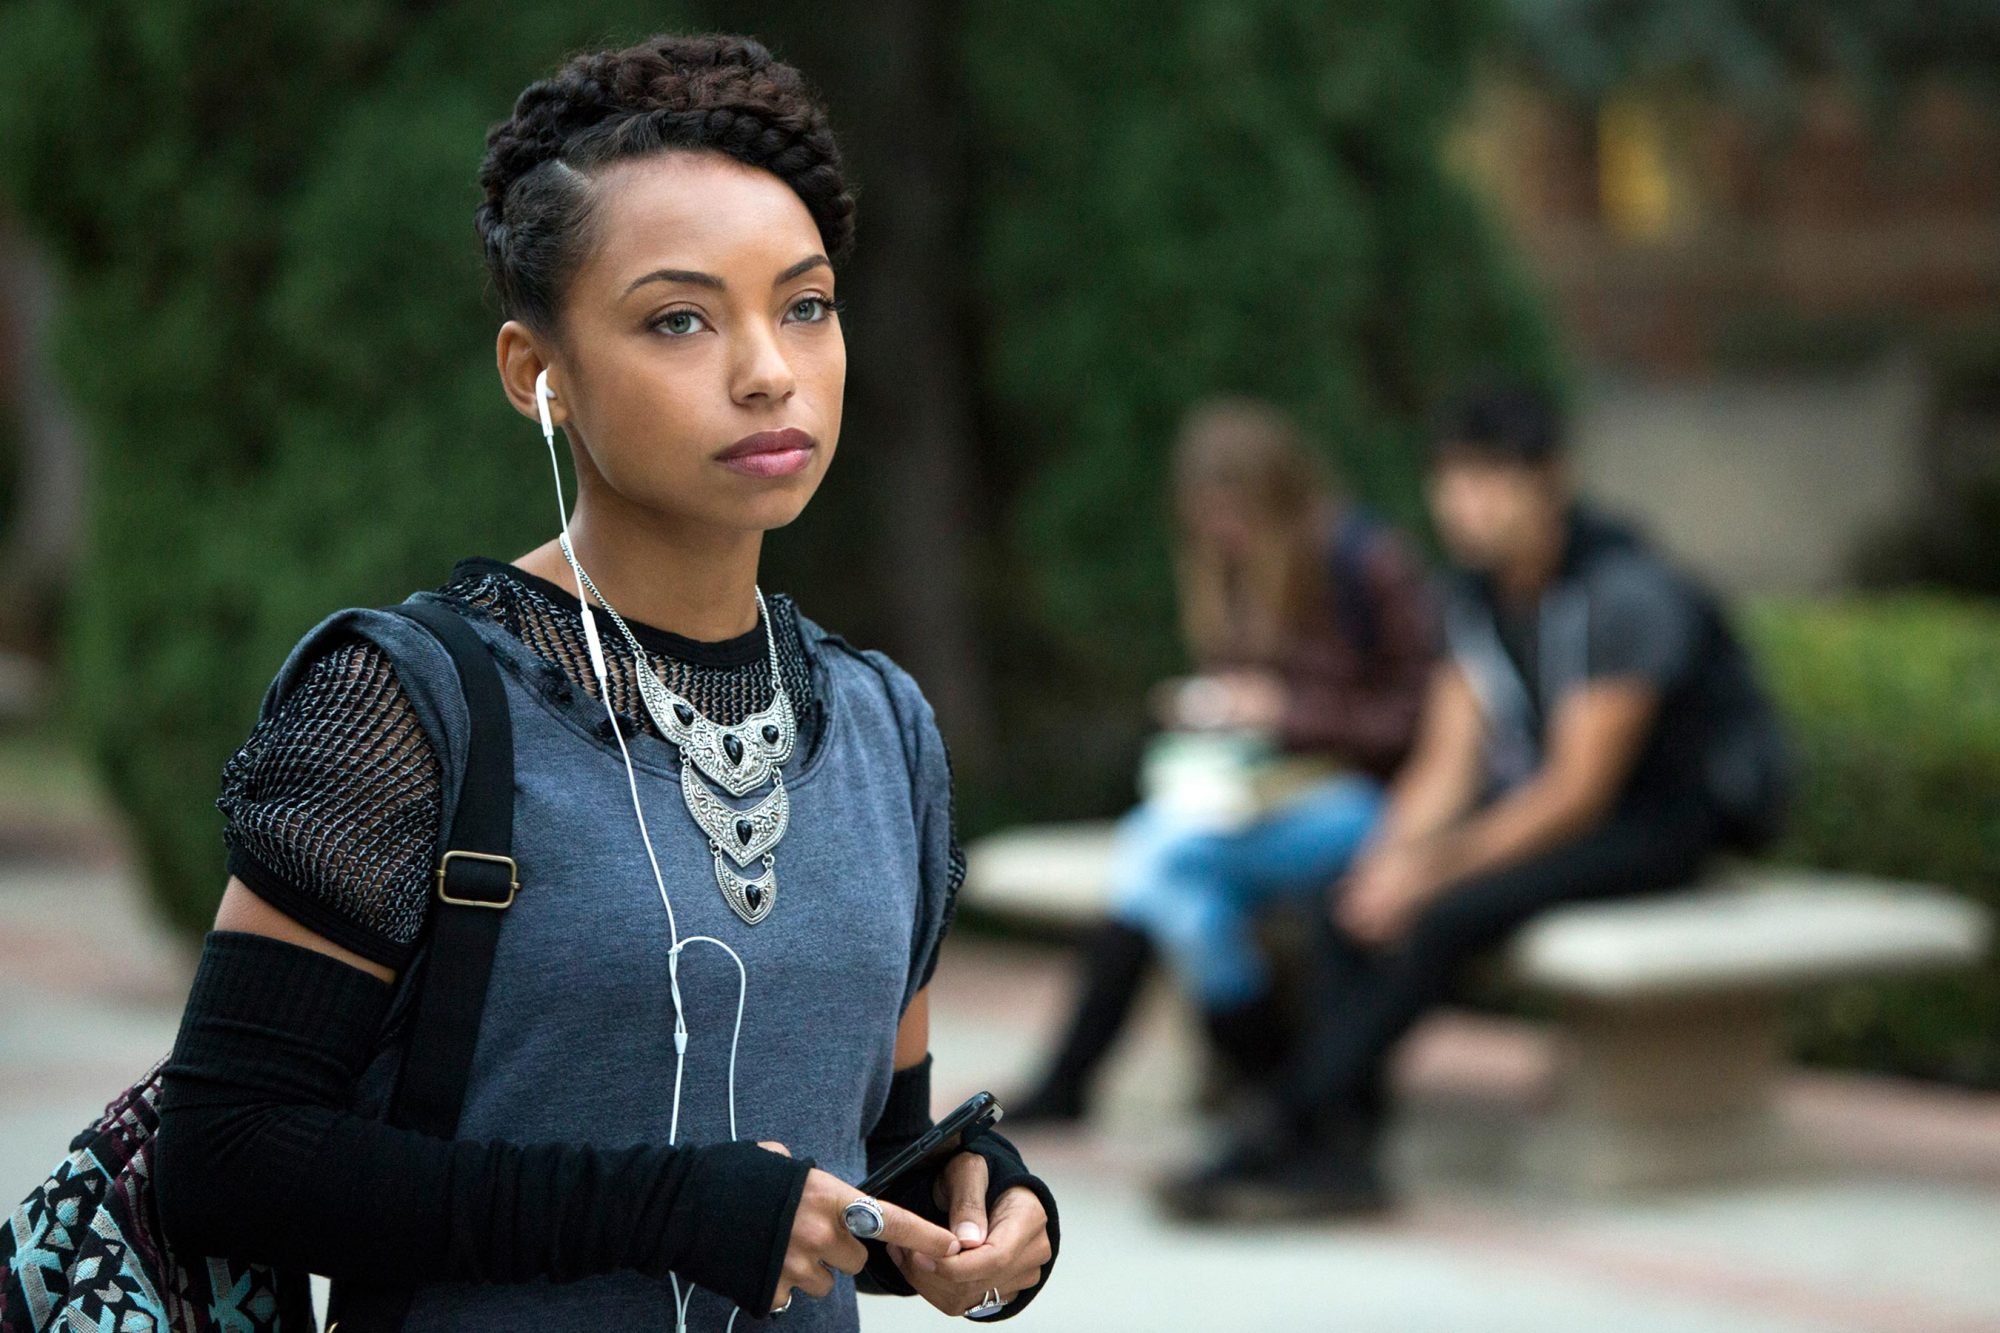 10. Dear White People (Netflix)